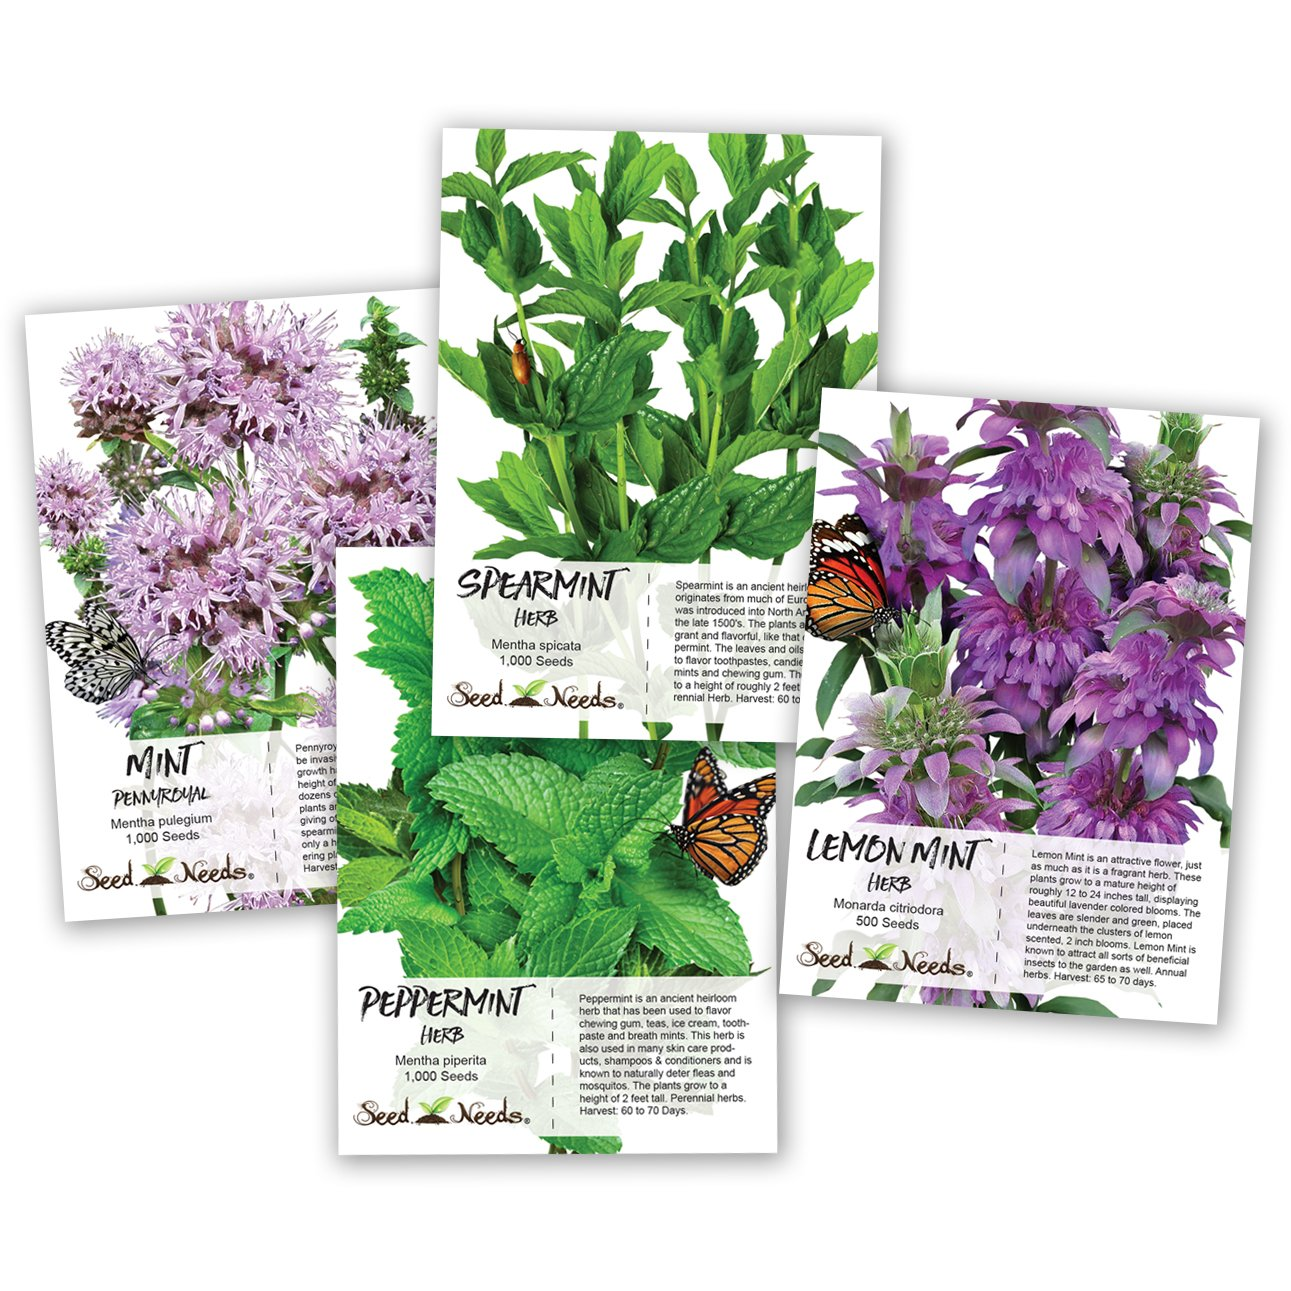 Mint Seed Collection / Seed Collection (Peppermint, Spearmint, Pennyroyal Mint & Lemon Mint) Non-GMO Seeds by Seed Needs by Seed Needs